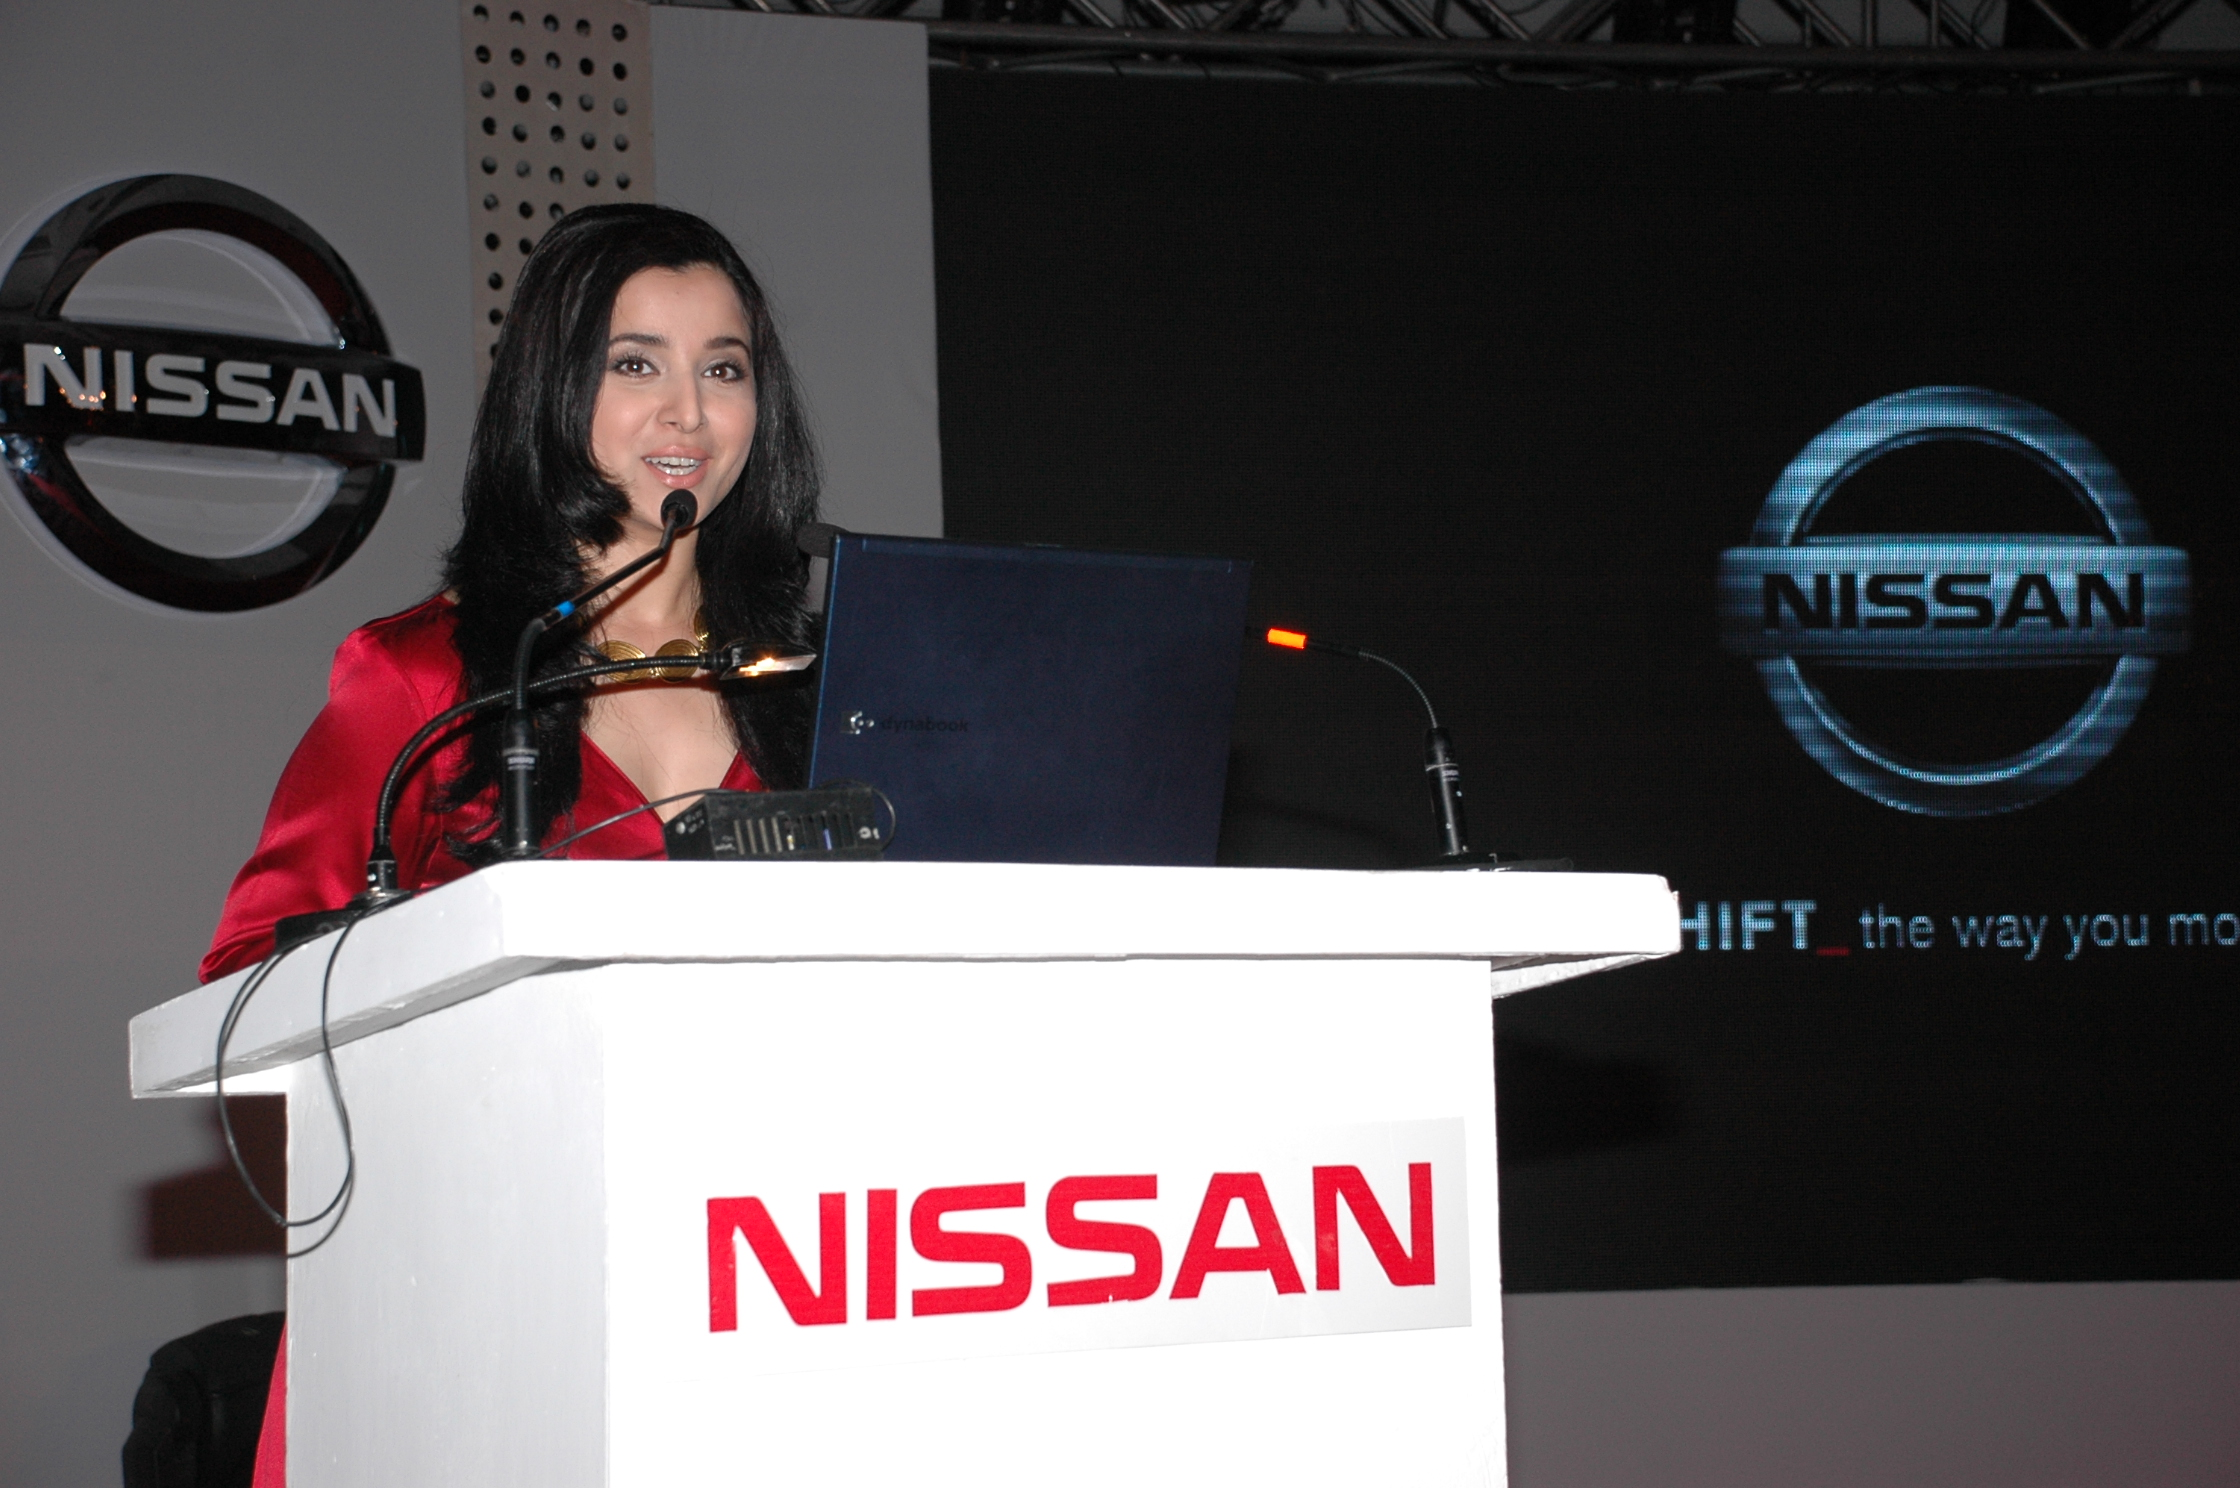 Grand launch of Nissan